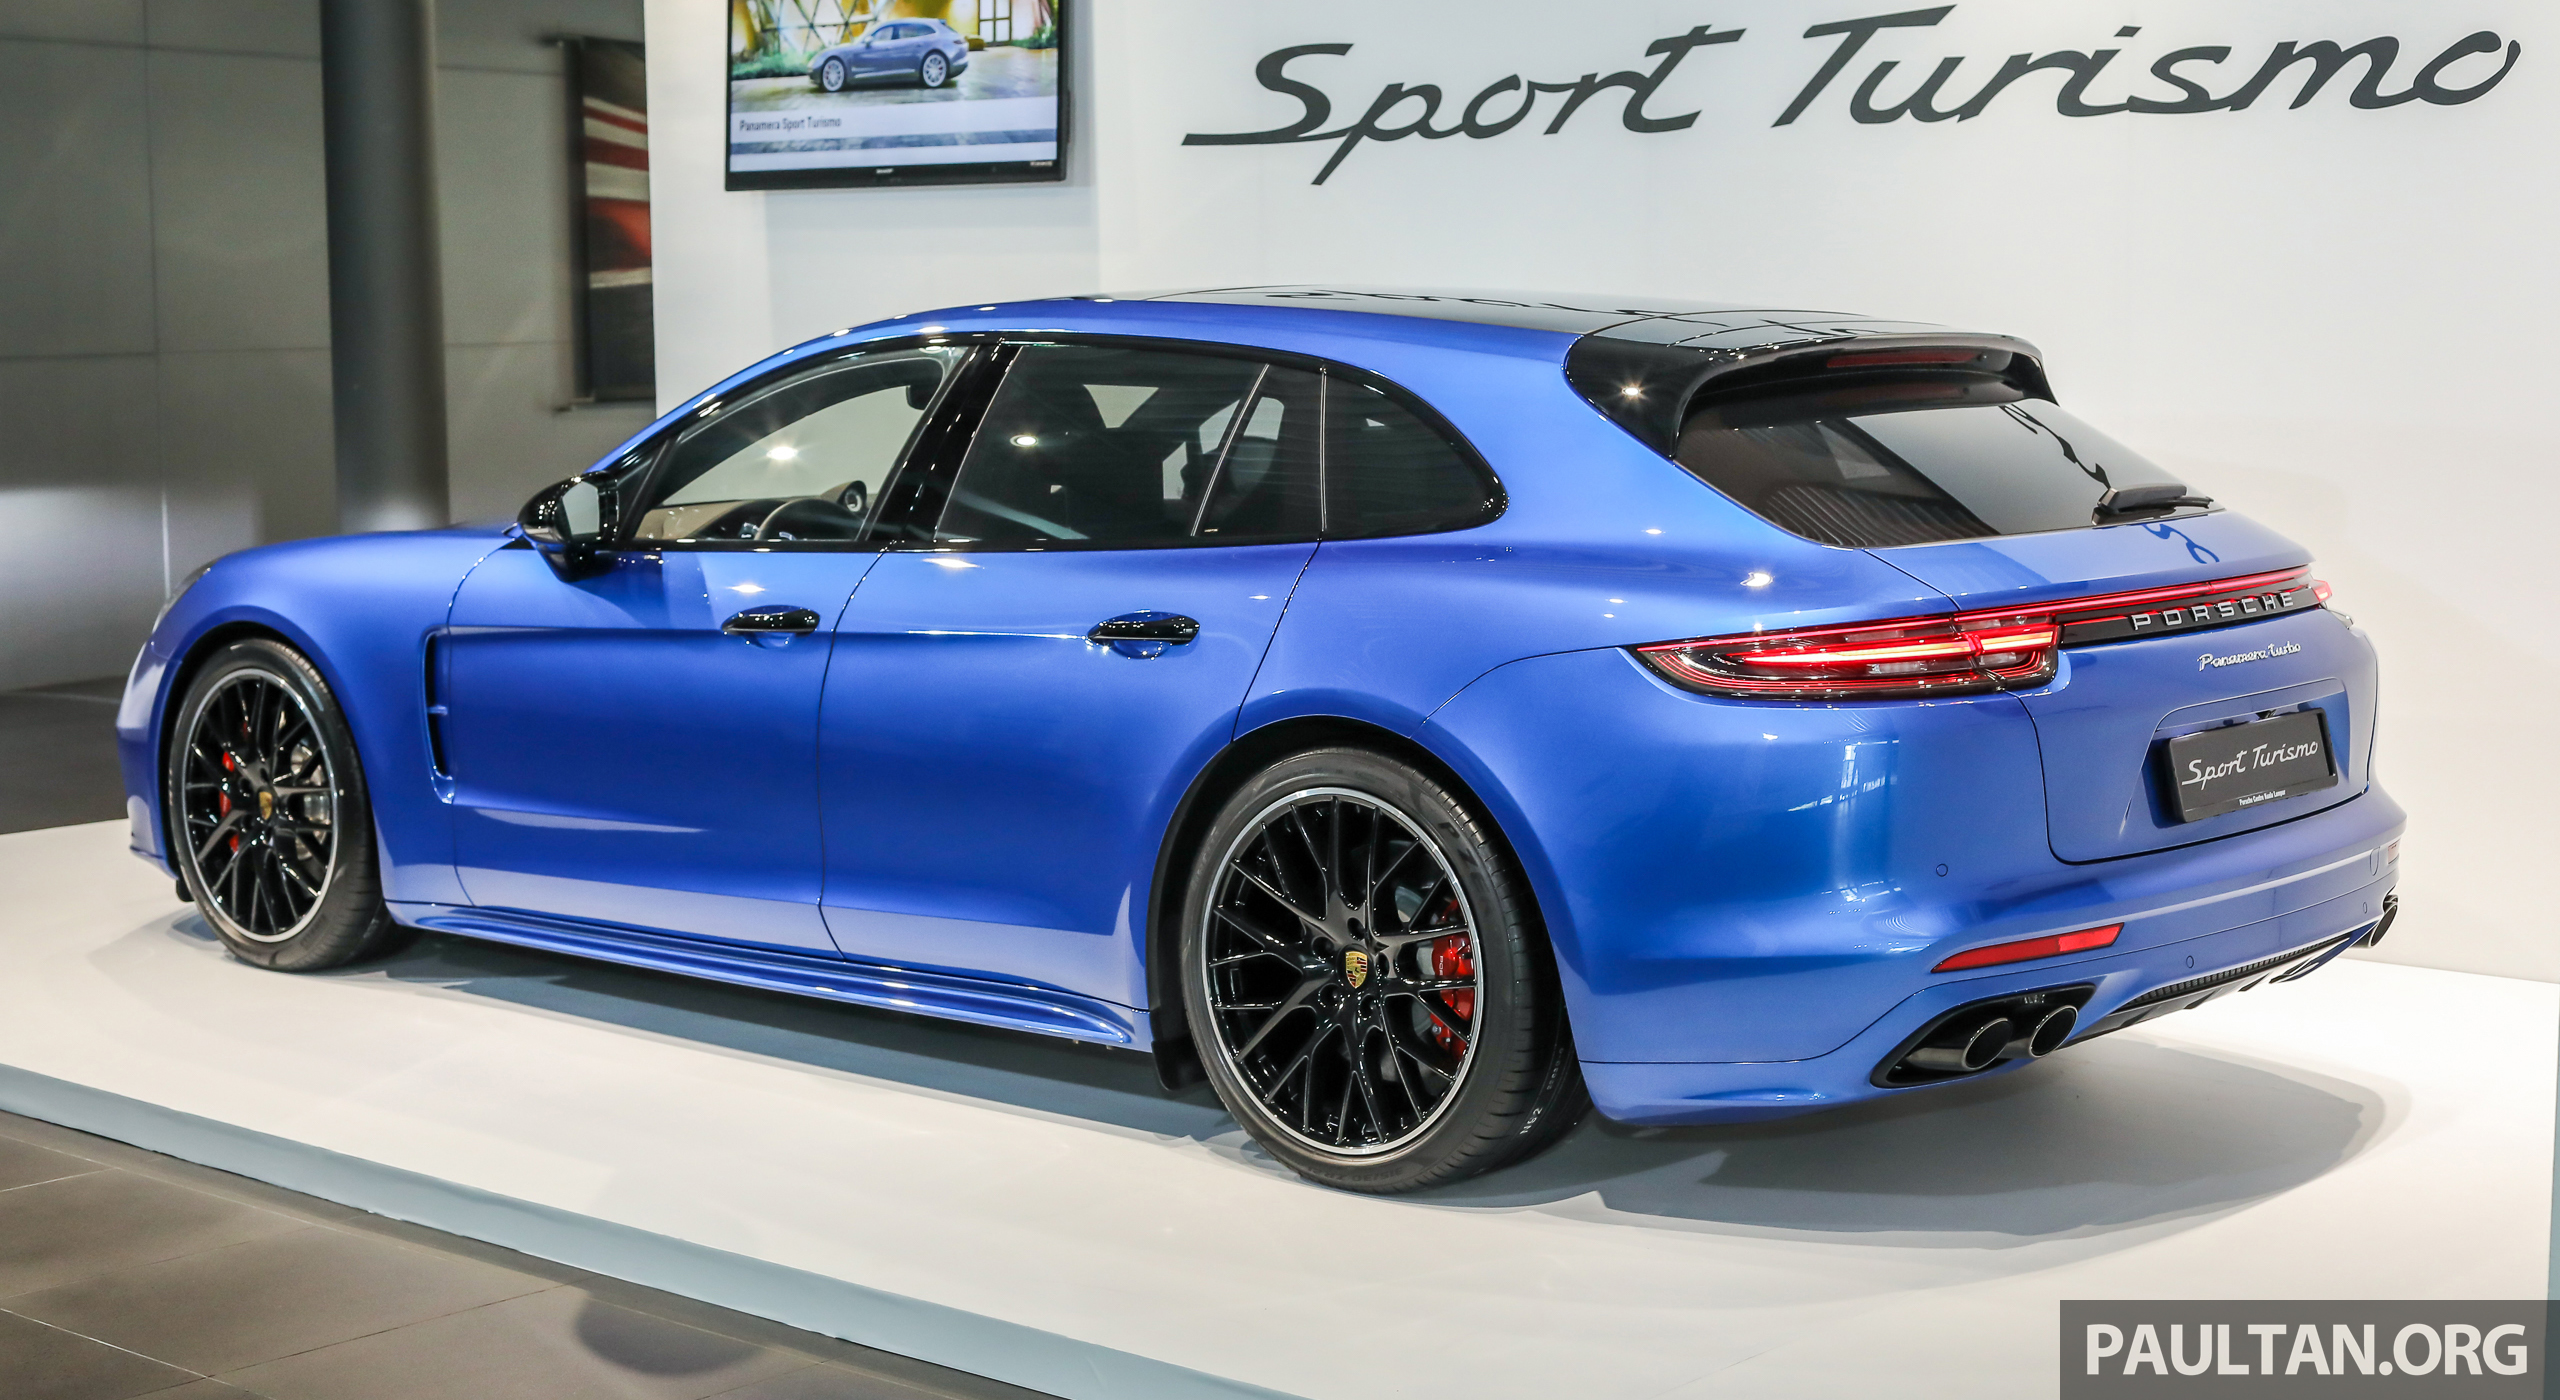 Porsche Panamera Sport Turismo Previewed In M Sia 4 4 E Hybrid And Turbo Models Launch In 2018